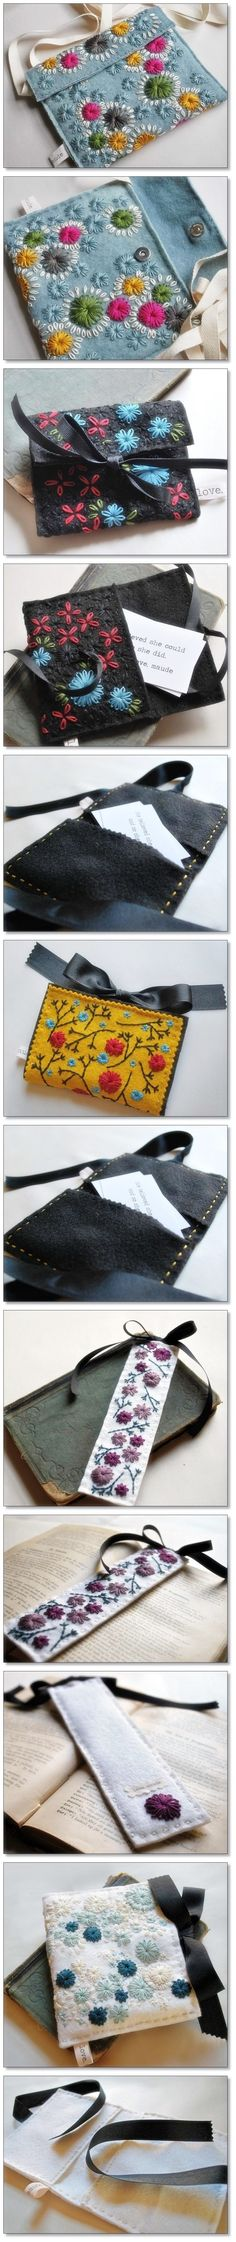 How to make Wool Felt Accessory DIY step by step tutorial instruction | Welcome Craft